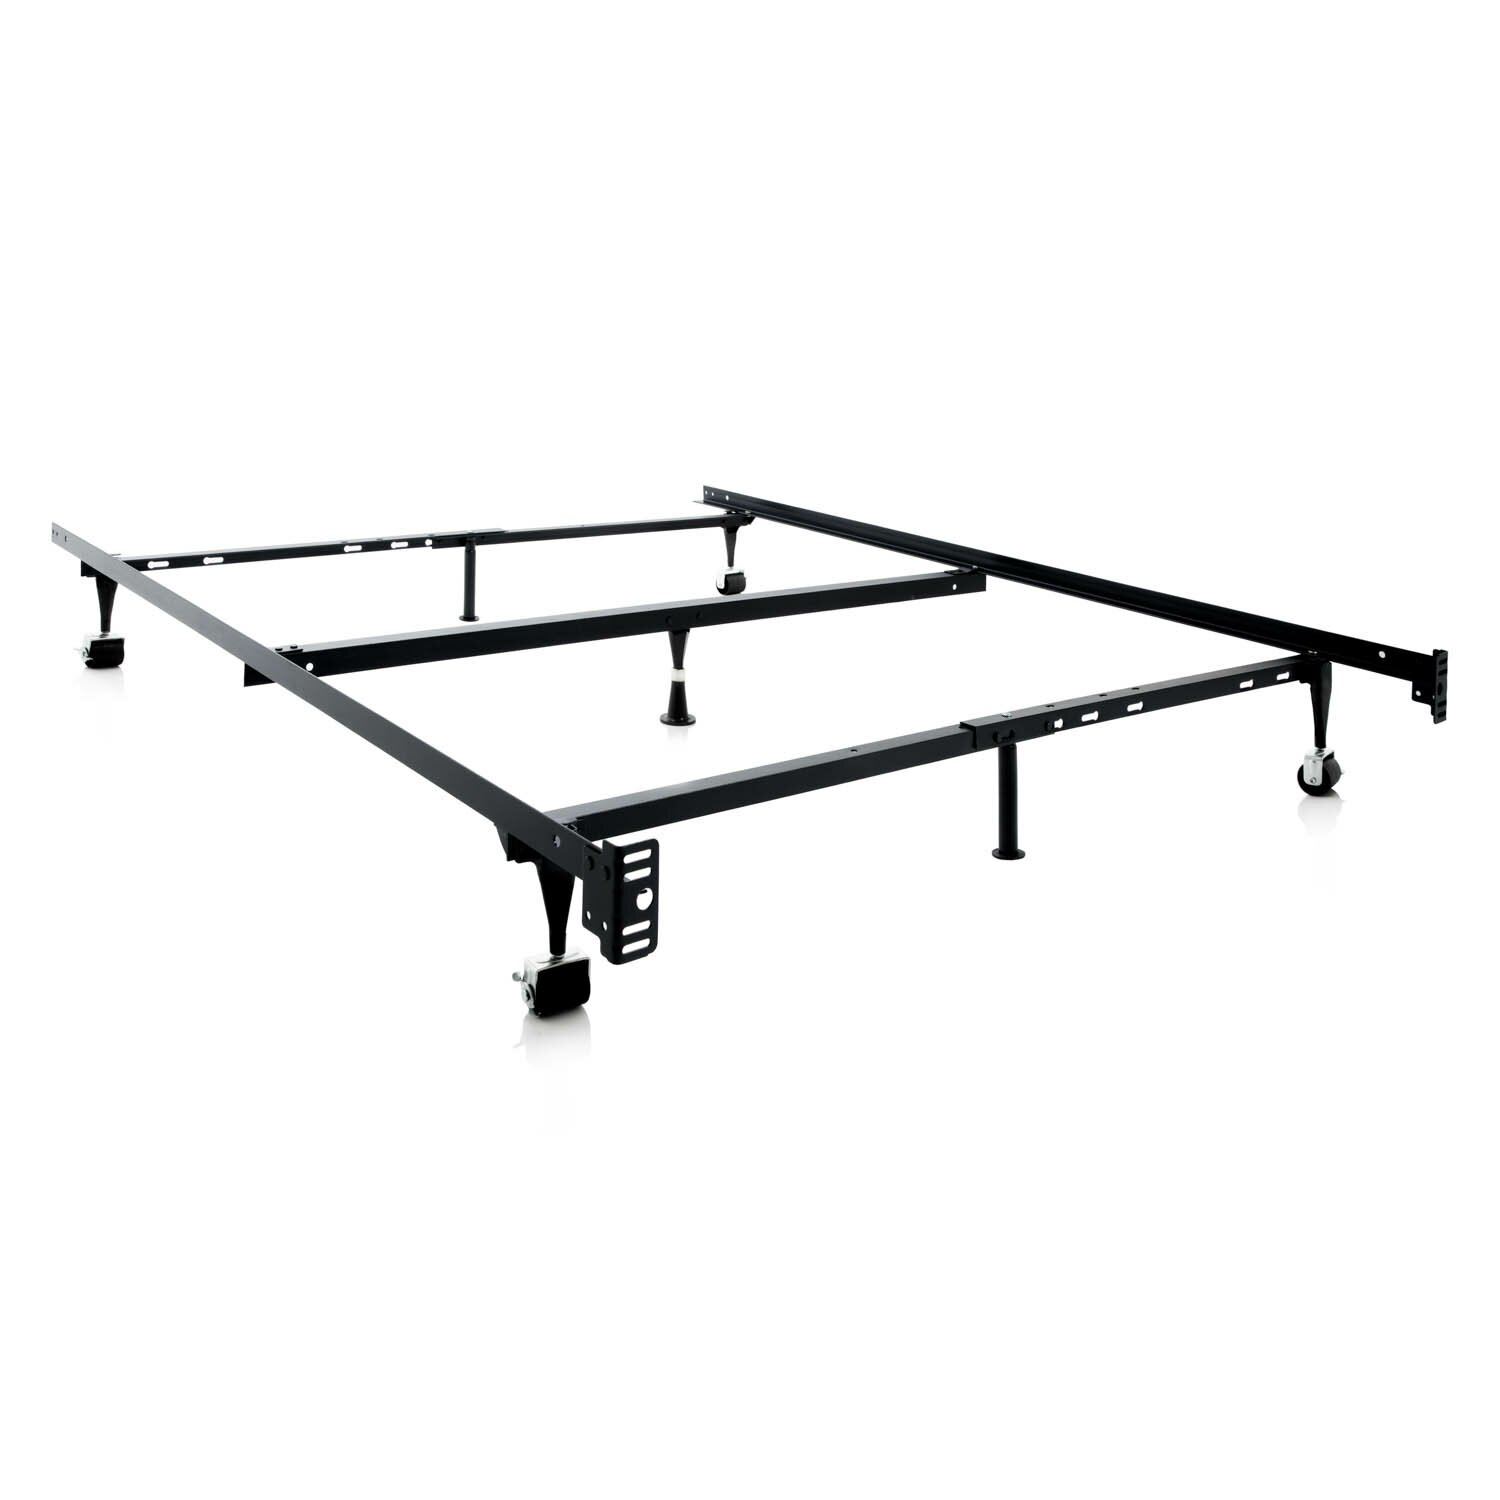 malouf heavy duty 7 leg adjustable metal bed frame with center support and rug roller